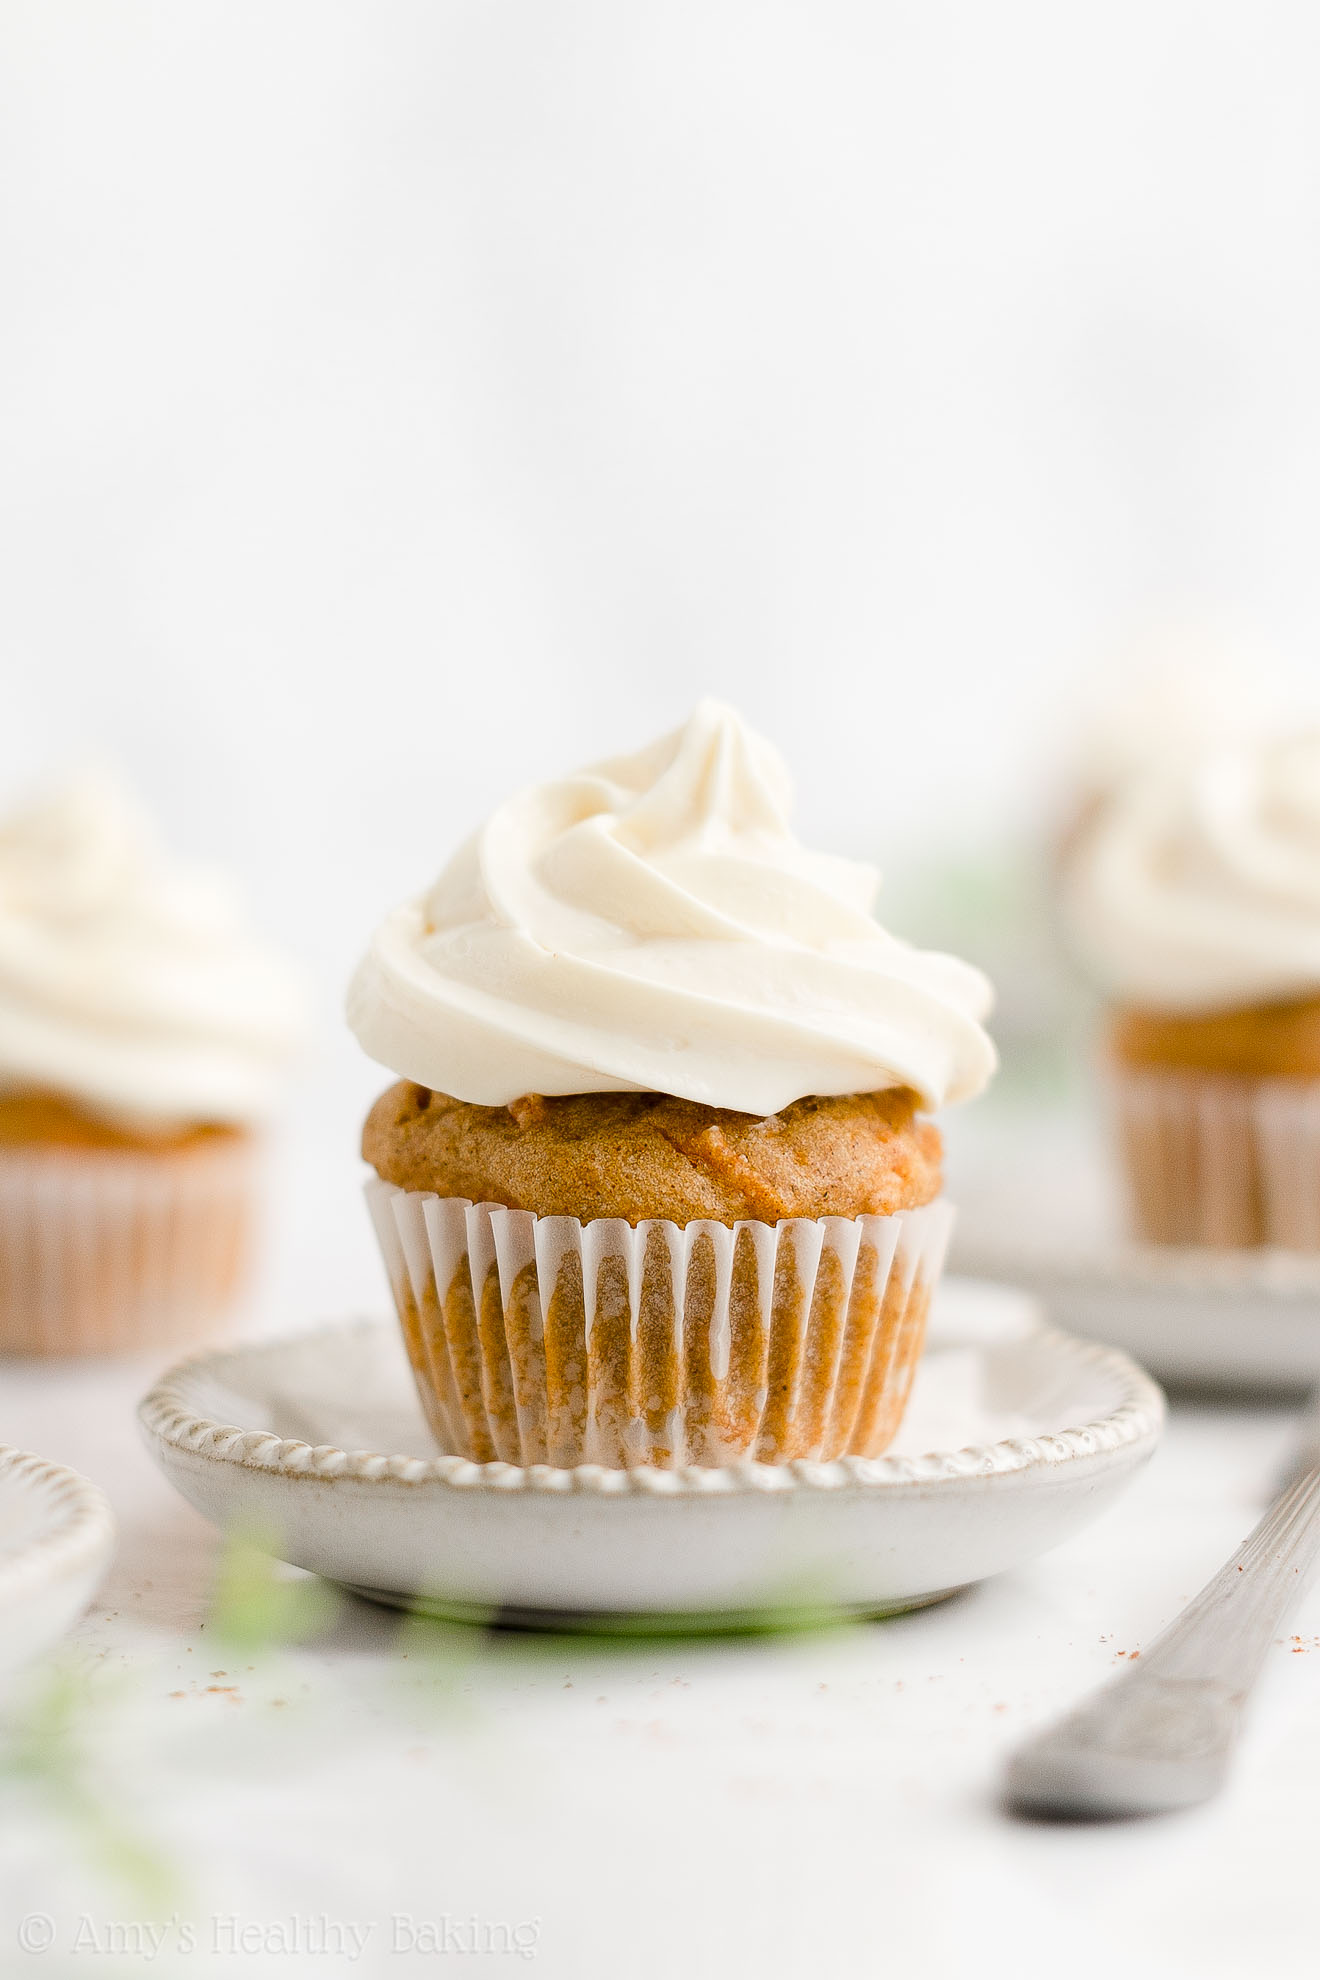 Best Easy Healthy Gluten Free Sugar Free Low Fat Moist Mini Carrot Cake Cupcakes